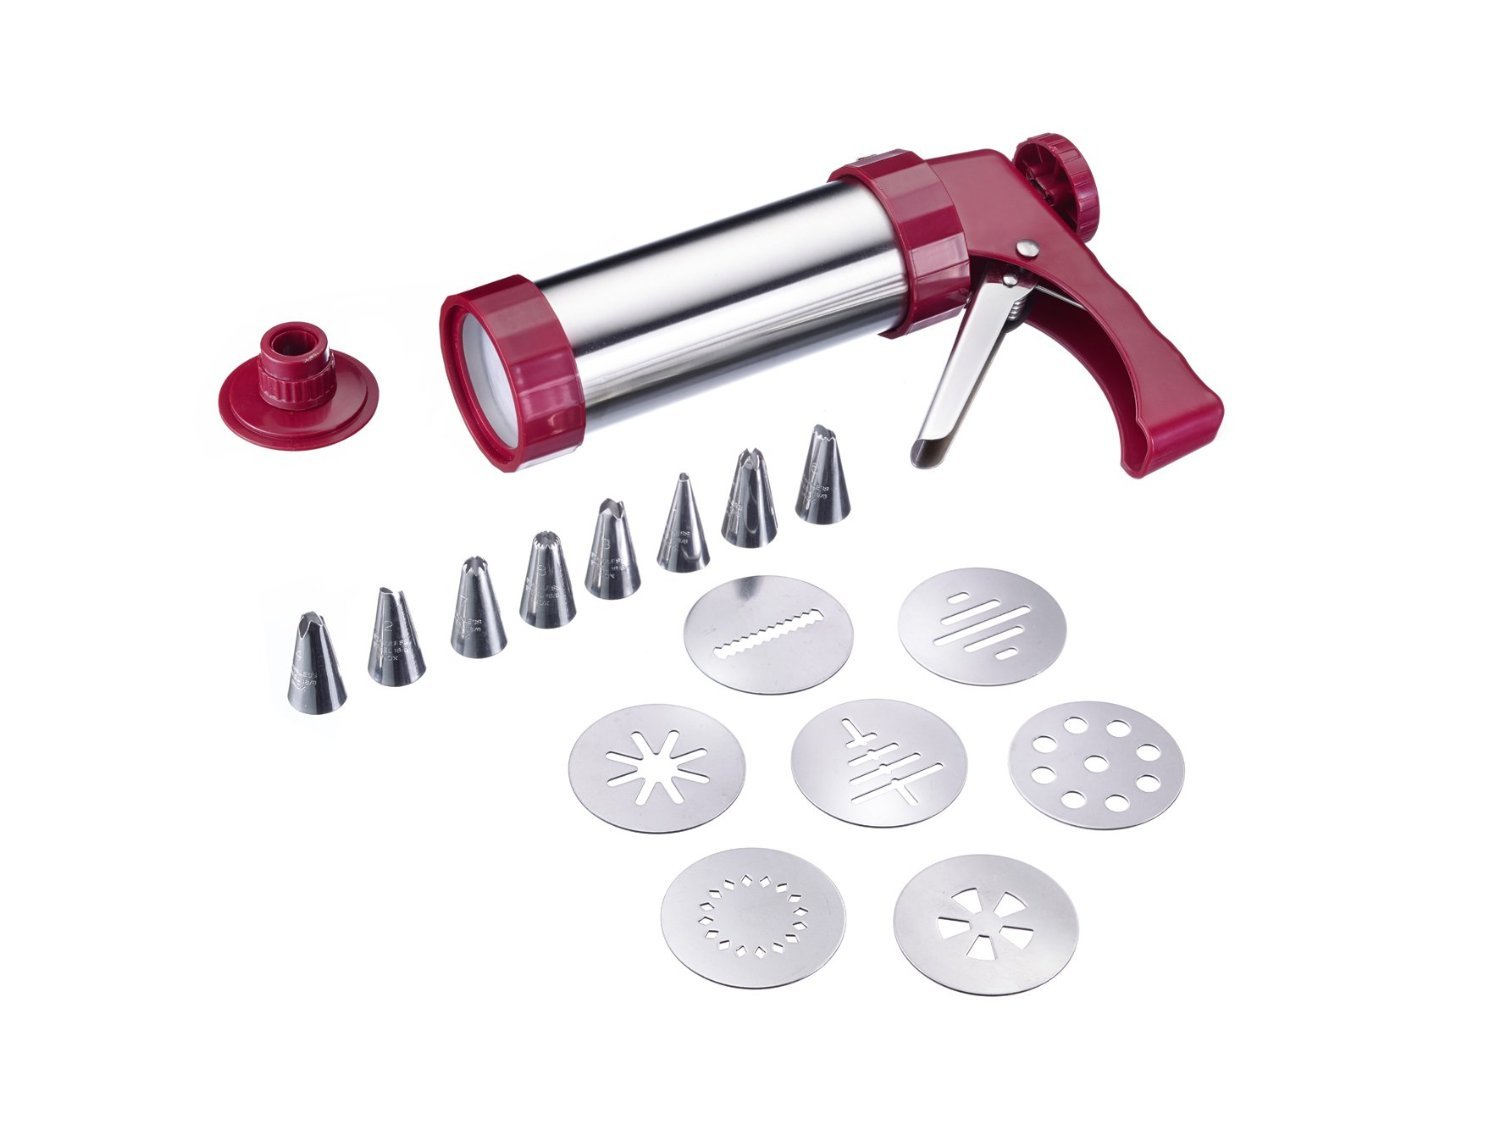 Westmark Germany Multipurpose Stainless Steel Cookie Press and Piping Gun Decorating Kit with Recipes